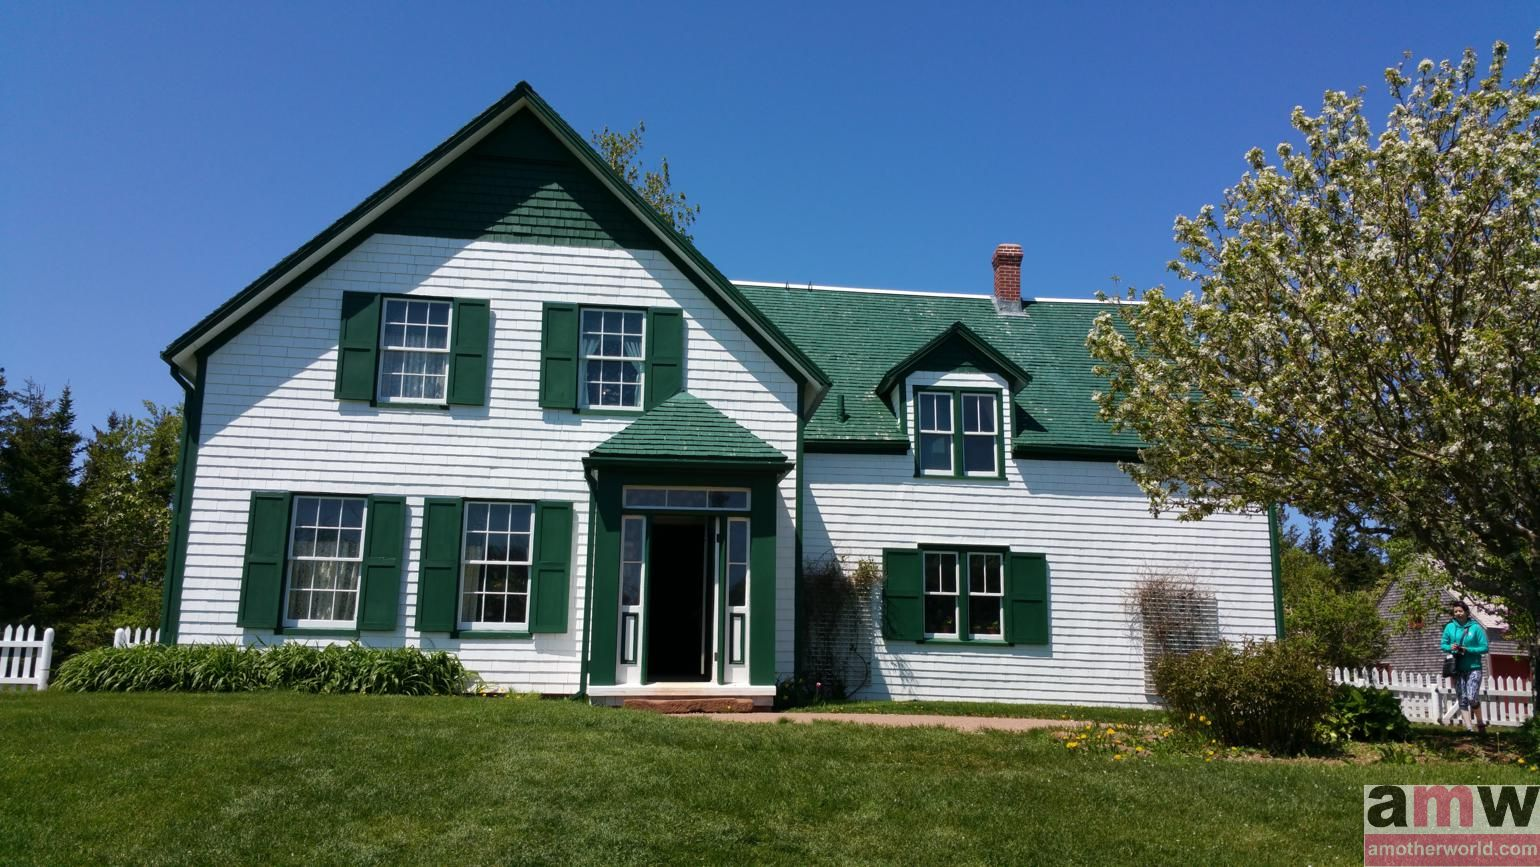 What did Anne of Green Gables House Look Like